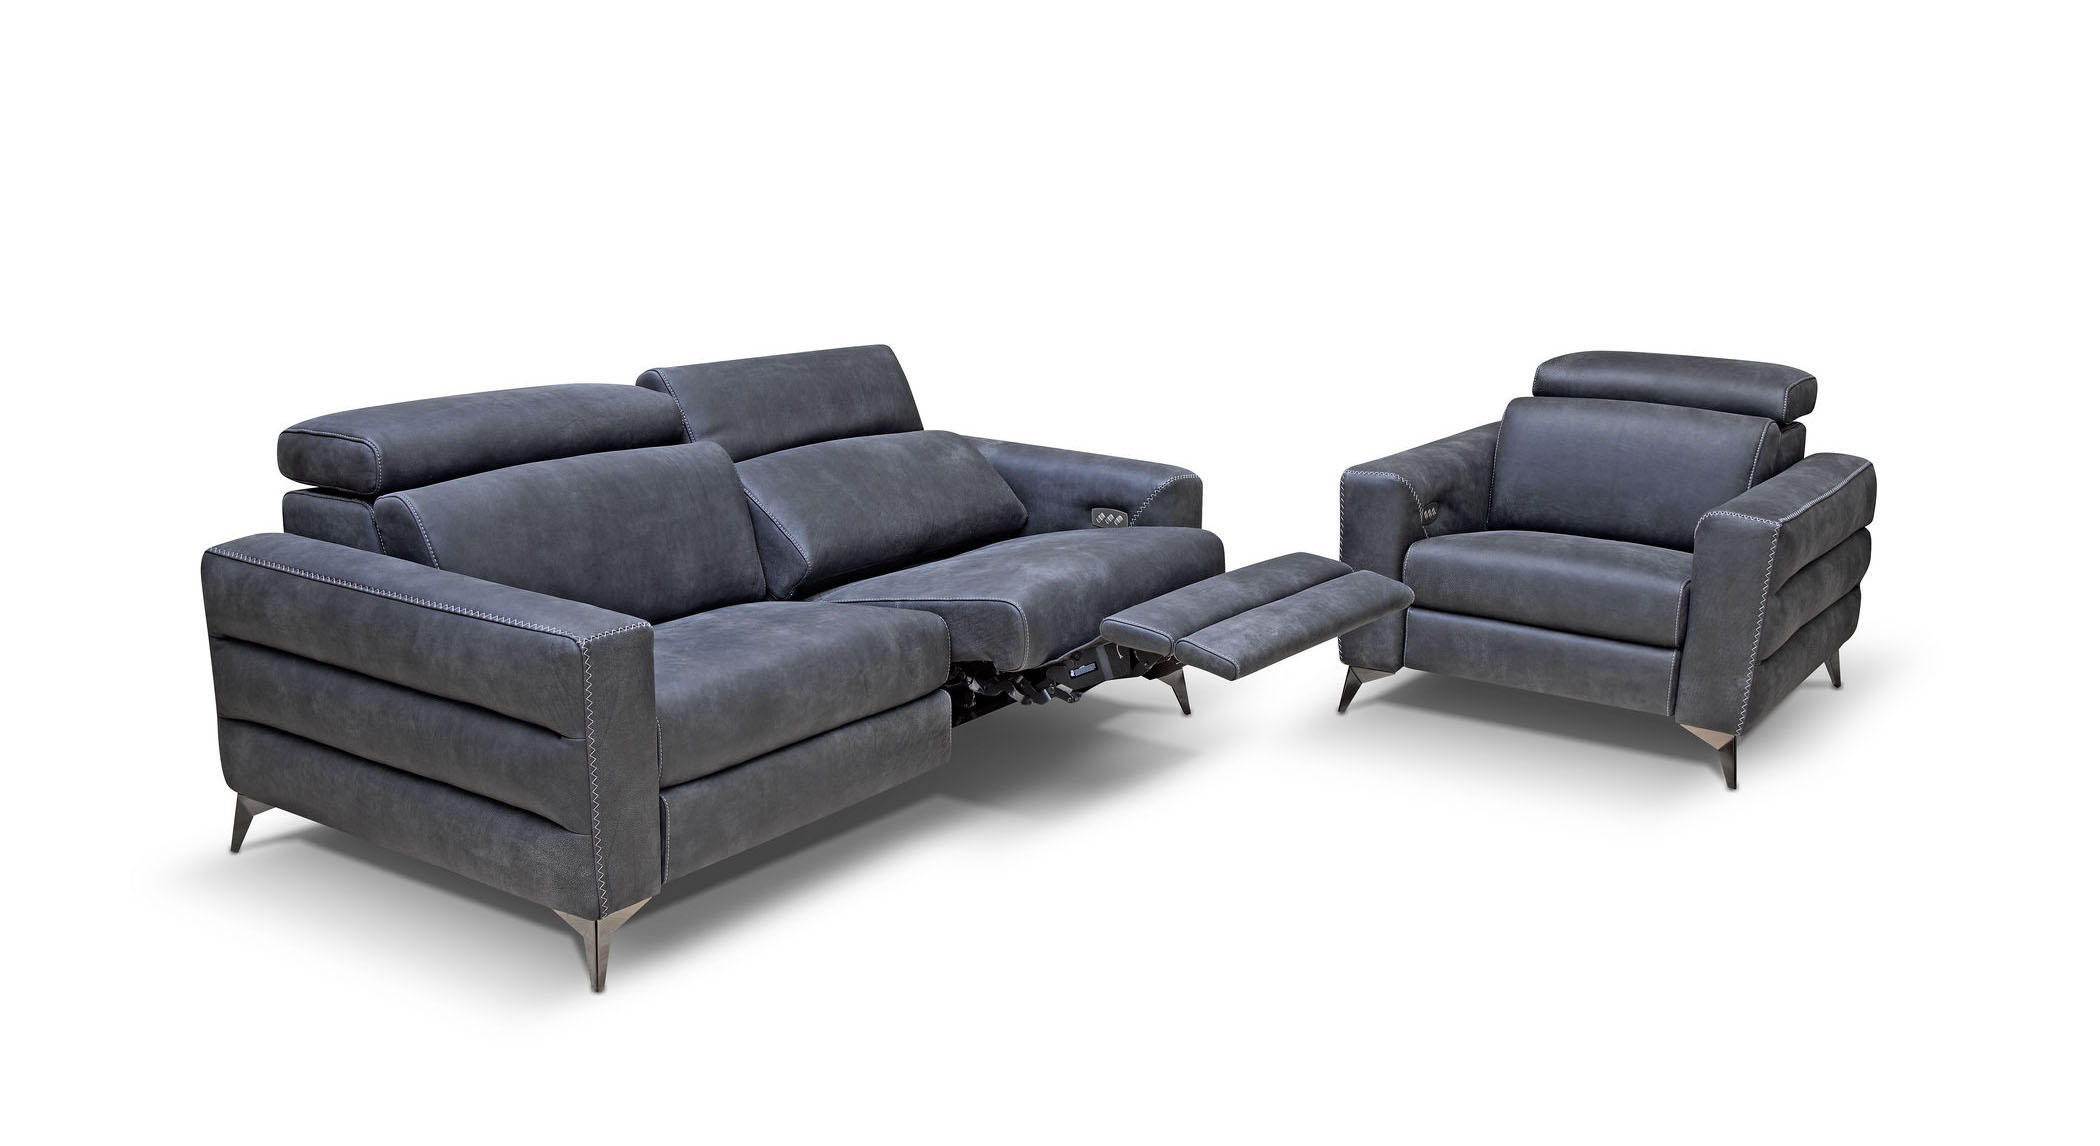 Bracci Ermes power sofa & chair